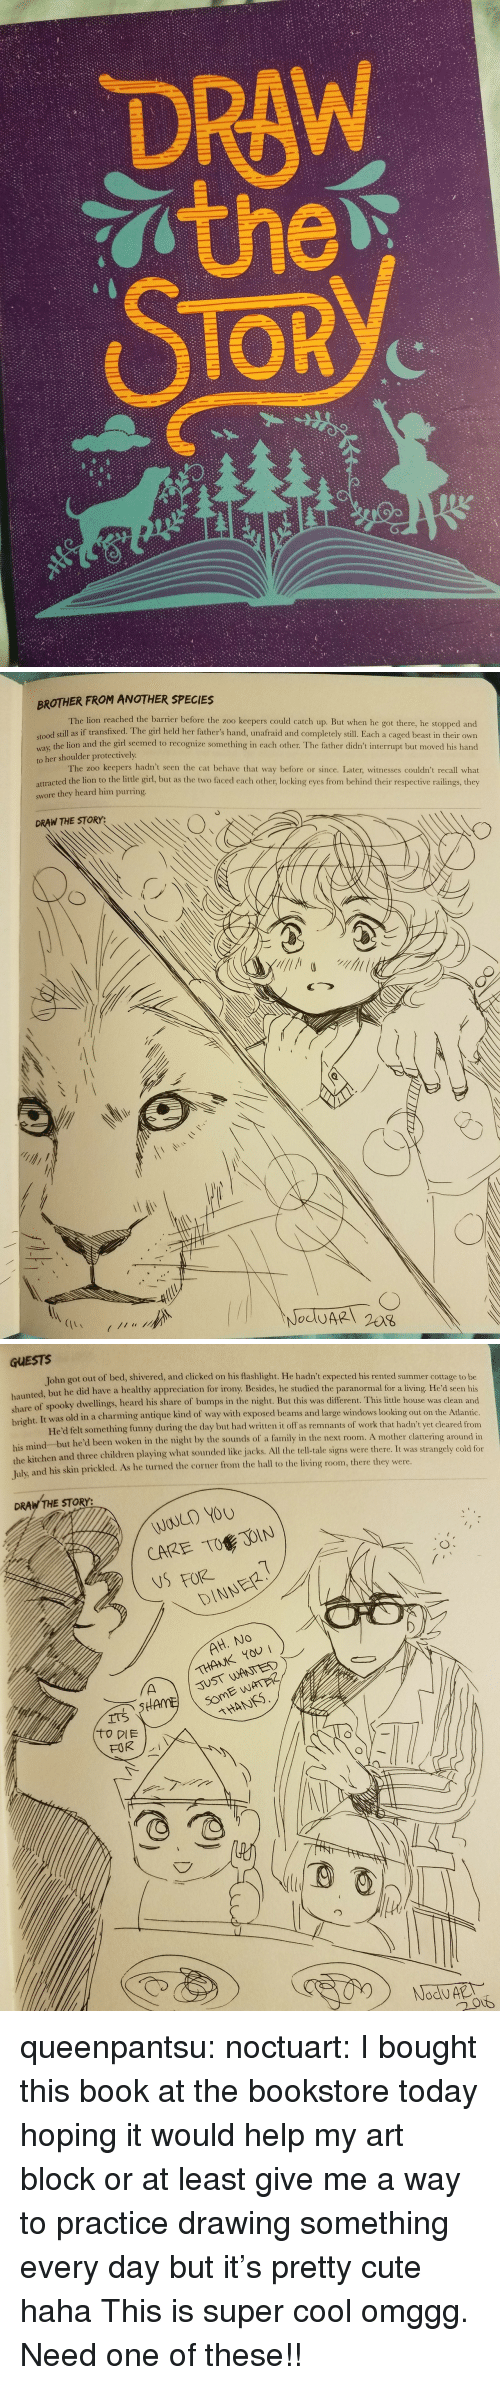 Caged: DRAW  TOR  2/   BROTHER FROM ANOTHER SPECIES  The lion reached the barrier before the zoo keepers could catch up. But when he got there, he stopped and  dl still as if transfixed. The girl held her father's hand, unafraid and completely still. Each a caged beast in their own  way, the lion and the girl seemed to recognize something in cach other. The father didn't interrupt but moved his hand  to her shoulder protectively  The zoo keepers hadn't seen the cat behave that way before or since. Later, witnesses couldn't recall what  attracted the lion to the little girl, but as the two faced each other, locking eyes from behind their respective railings, they  swore they heard him purring  DRAW THE STORY:   GUESTS  John got out of bed, shivered, and clicked on his flashlight. He hadn't expected his rented summer cottage to be  nted, but he did have a healthy appreciation for irony. Besides, he studied the paranormal for a living. He'd seen his  share  of spooky dwellings, heard his share of bumps in the night. But this was different. This little house was clean and  It was old in a charming antique kind of way with exposed beams and large windows looking out on the Atlantic  He'd felt something funny during the day but had written it off as remnants of work that hadn't yet cleared from  right.  his mind but he'd been woken in the night by the sounds of a family in the next room. A mother  the kitchen and three children playing what sounded like jacks. All the tell-tale signs were there. It was stran  Tulx  and his skin prickled. As he turned the corner from the hall to the living room, there they were.  clattering around in  gely cold for  DRAW THE STORY:  WOULD YOU  CARE TO JOIN  NSFORE  DINNER  THANK YOU  JUST WANTED  THANS queenpantsu:  noctuart:  I bought this book at the bookstore today hoping it would help my art block or at least give me a way to practice drawing something every day but it's pretty cute haha  This is super cool omggg. Need one of these!!